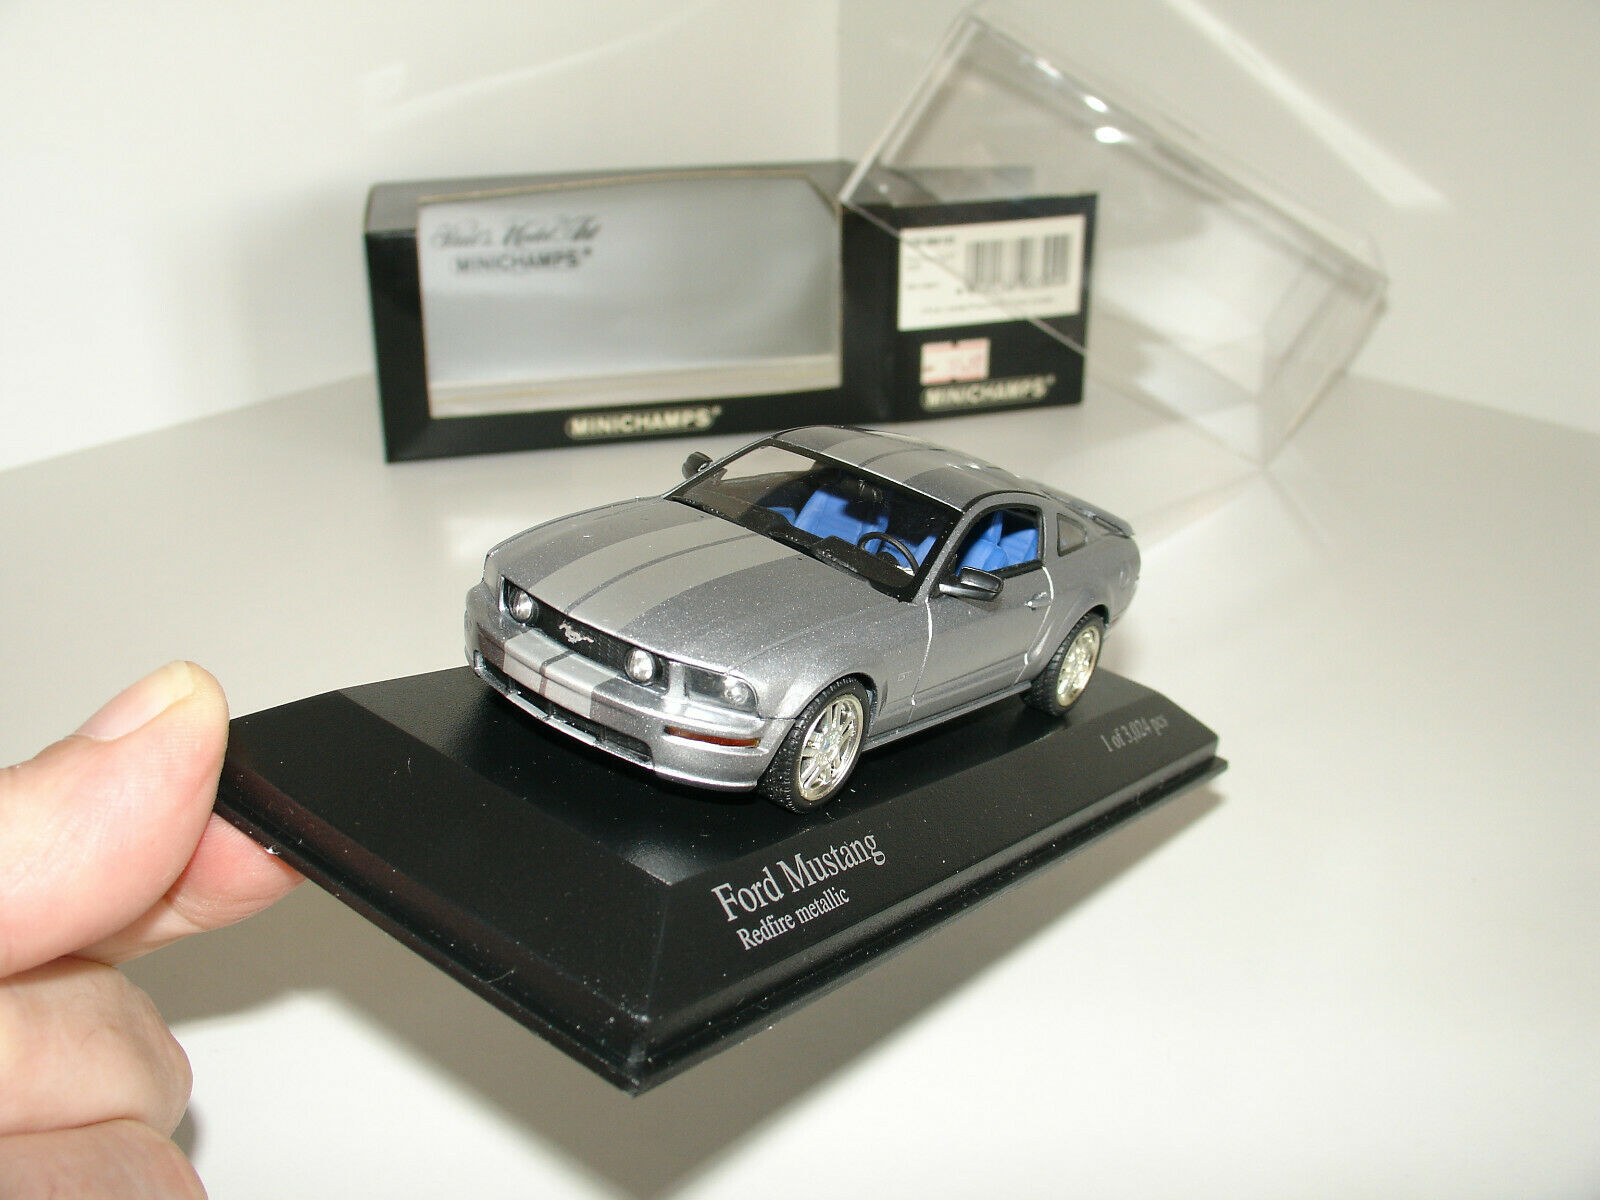 143 Ford Mustang 2005 argento by Minichamps Scatola sborsaliata